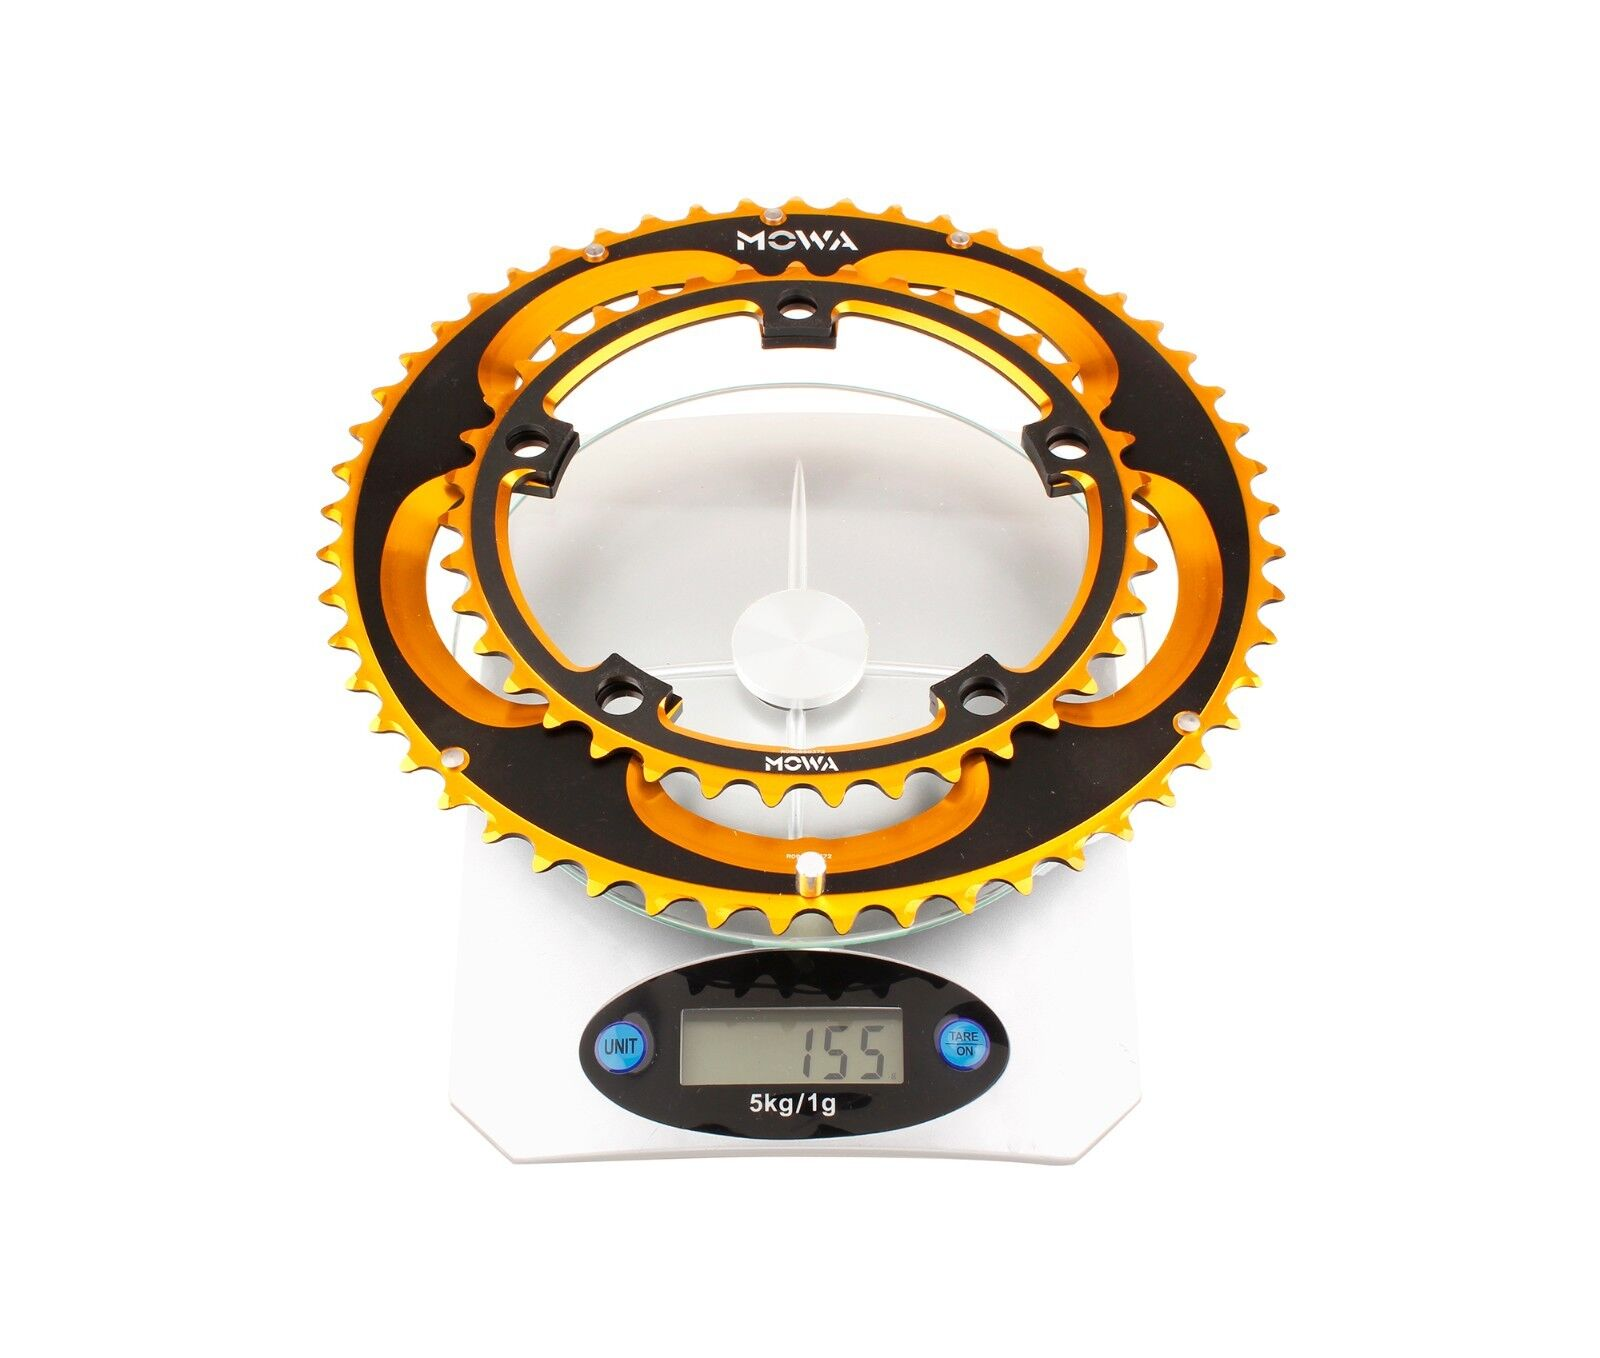 MOWA Plateaux Vélo Route 53 39dts  CX Bicyclette Cyclisme Chainringset 9v 10v Or  free shipping on all orders